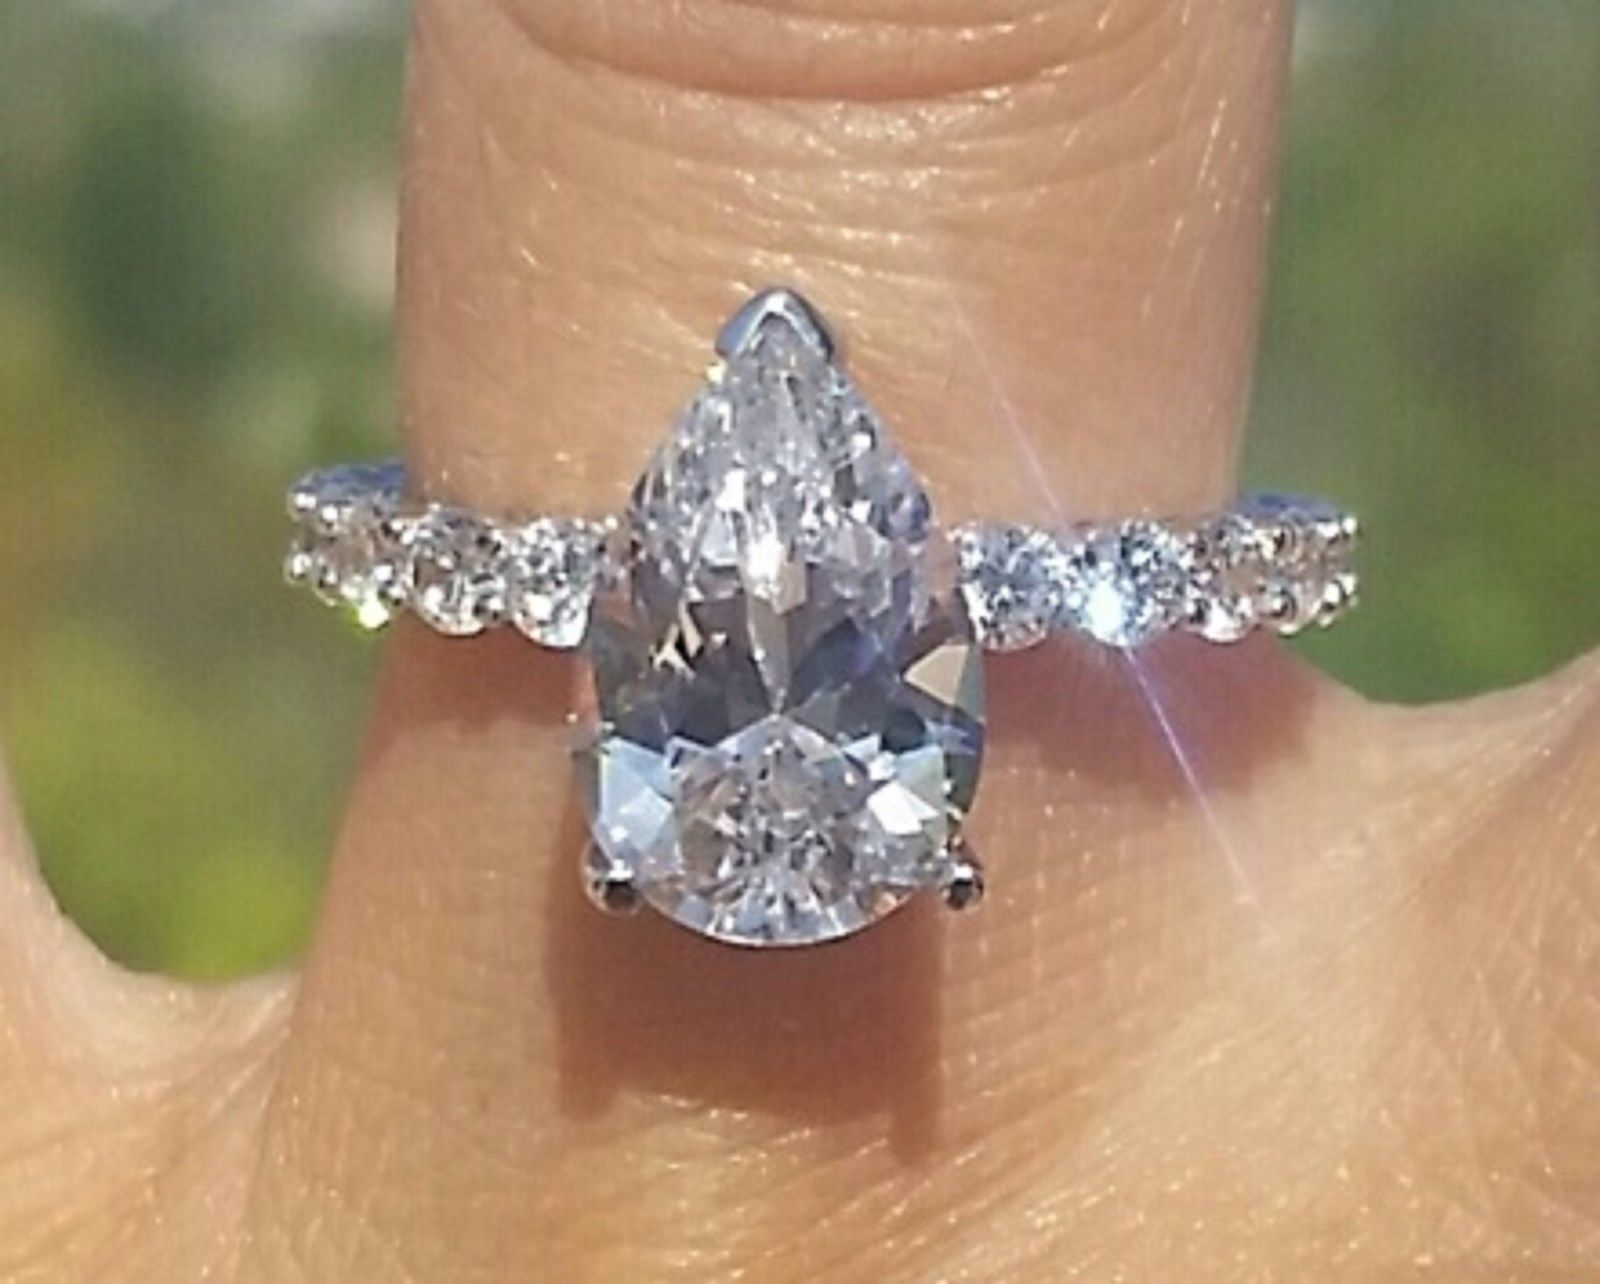 canada jewellery jewelry to diamonds rings toronto custom purchase made earrings moissanites how diamond engagement solitaire by man